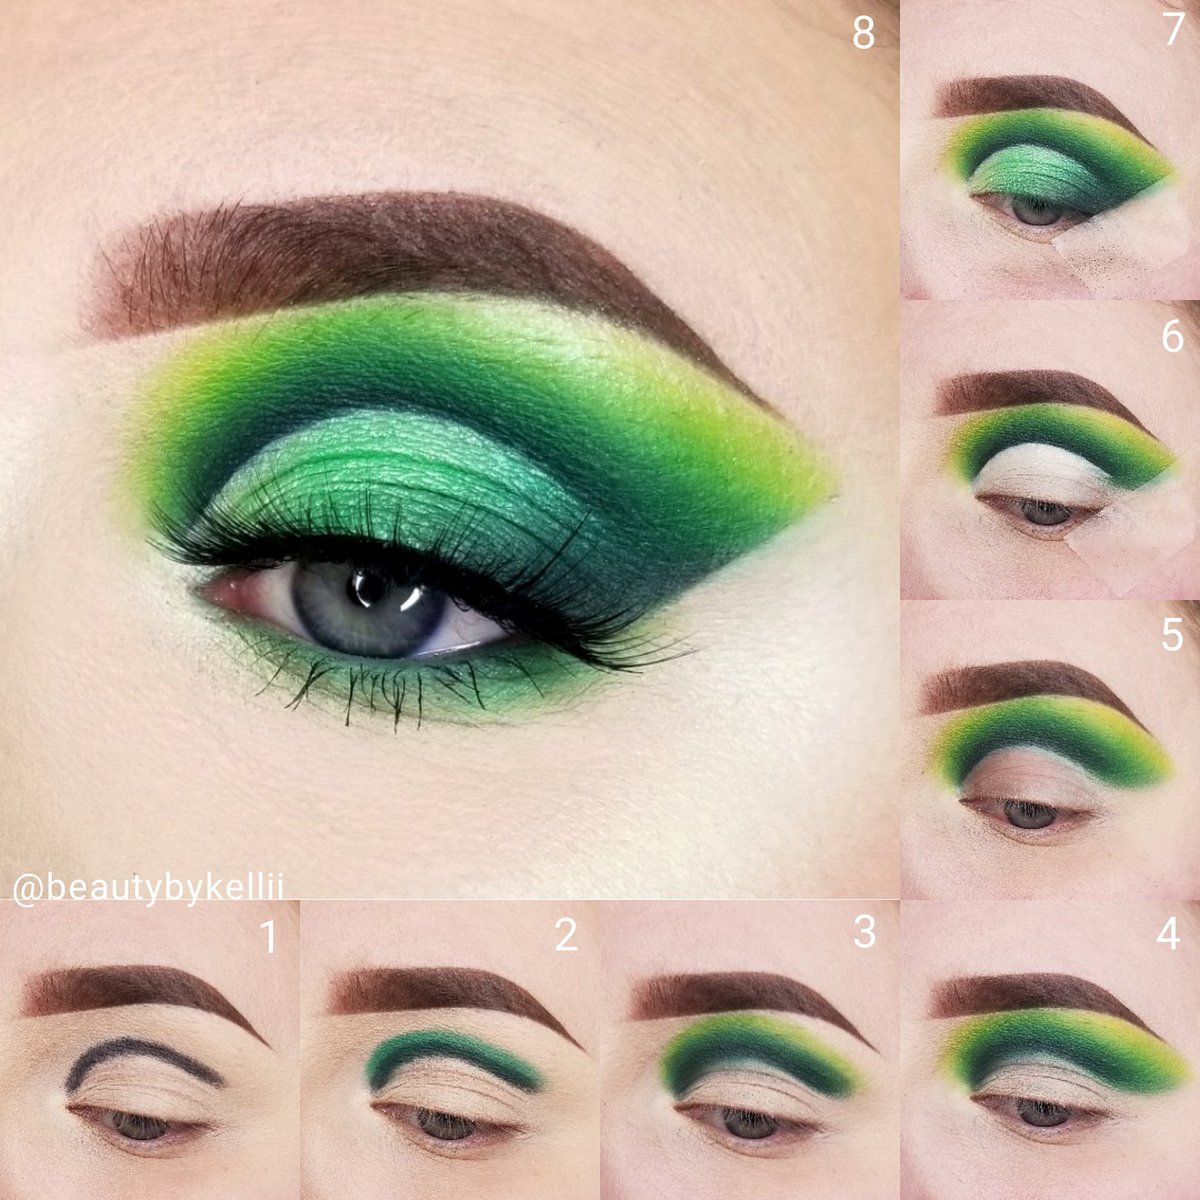 GREEN   All product details on my IG http://www.instagram.com/beautybykellii  Just a little something #abhbrows #norvina #bhcosmetics #takemebacktobrazilpalette #kisslashes #elfcosmetics #elfcamoconcealer @ABHcosmetics @norvina1 @bhcosmetics @KissProductspic.twitter.com/pFfcgf7Bws